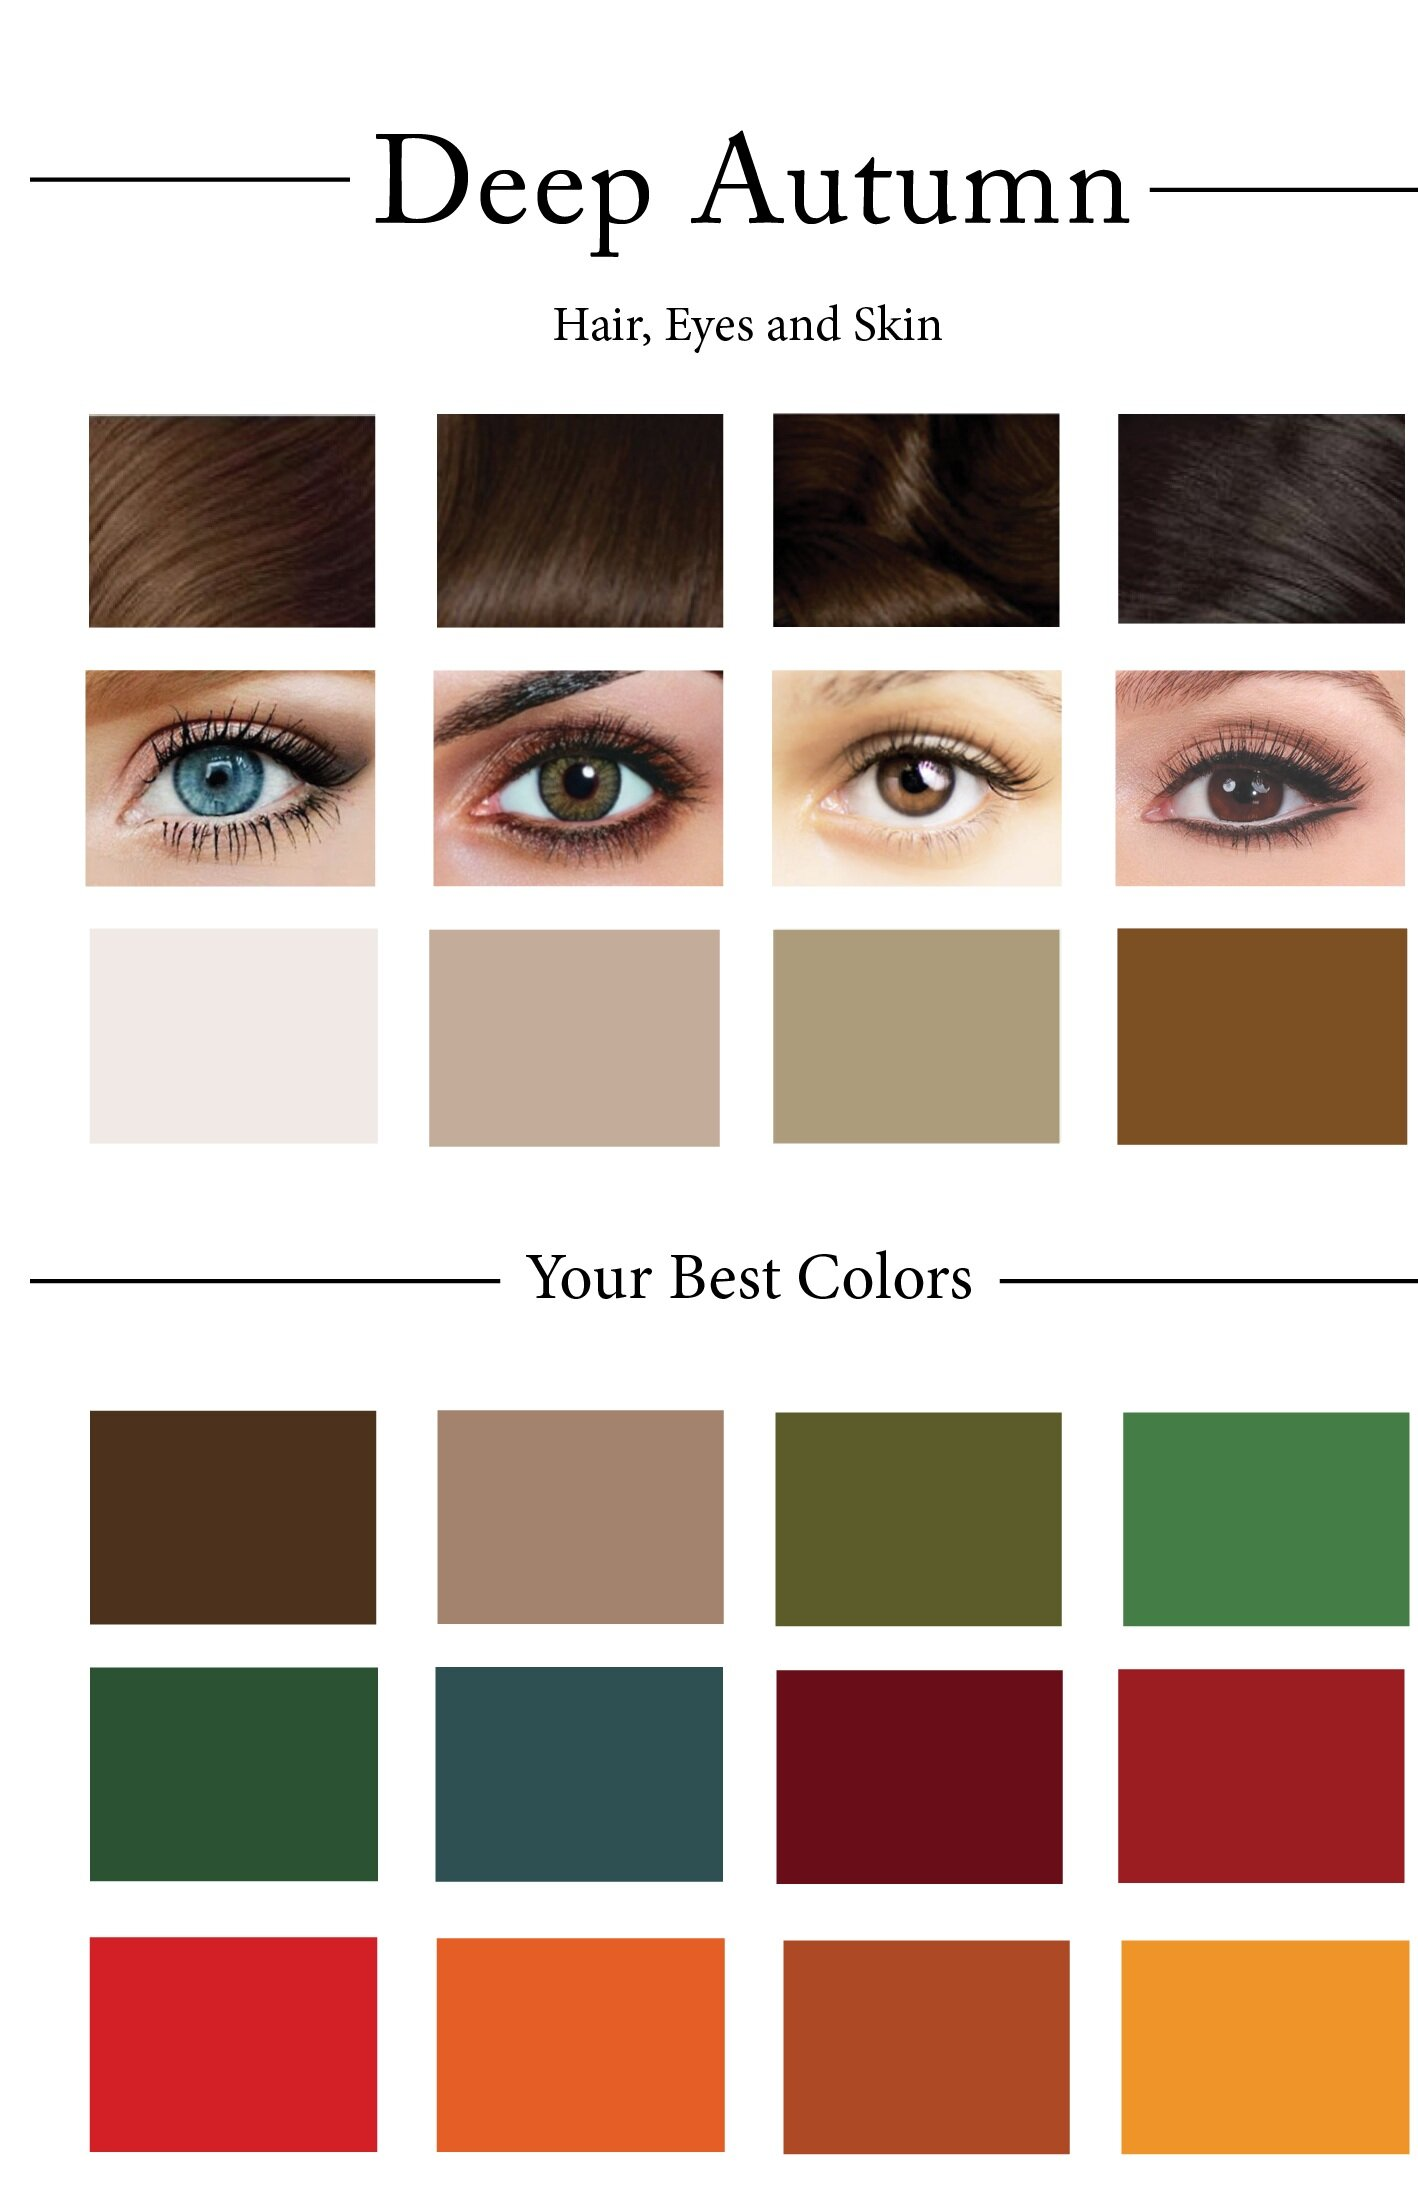 How To Create Your Personal Color Palette Plus Take Our Color Quiz Cladwell,Cheapest City To Buy A House In Georgia